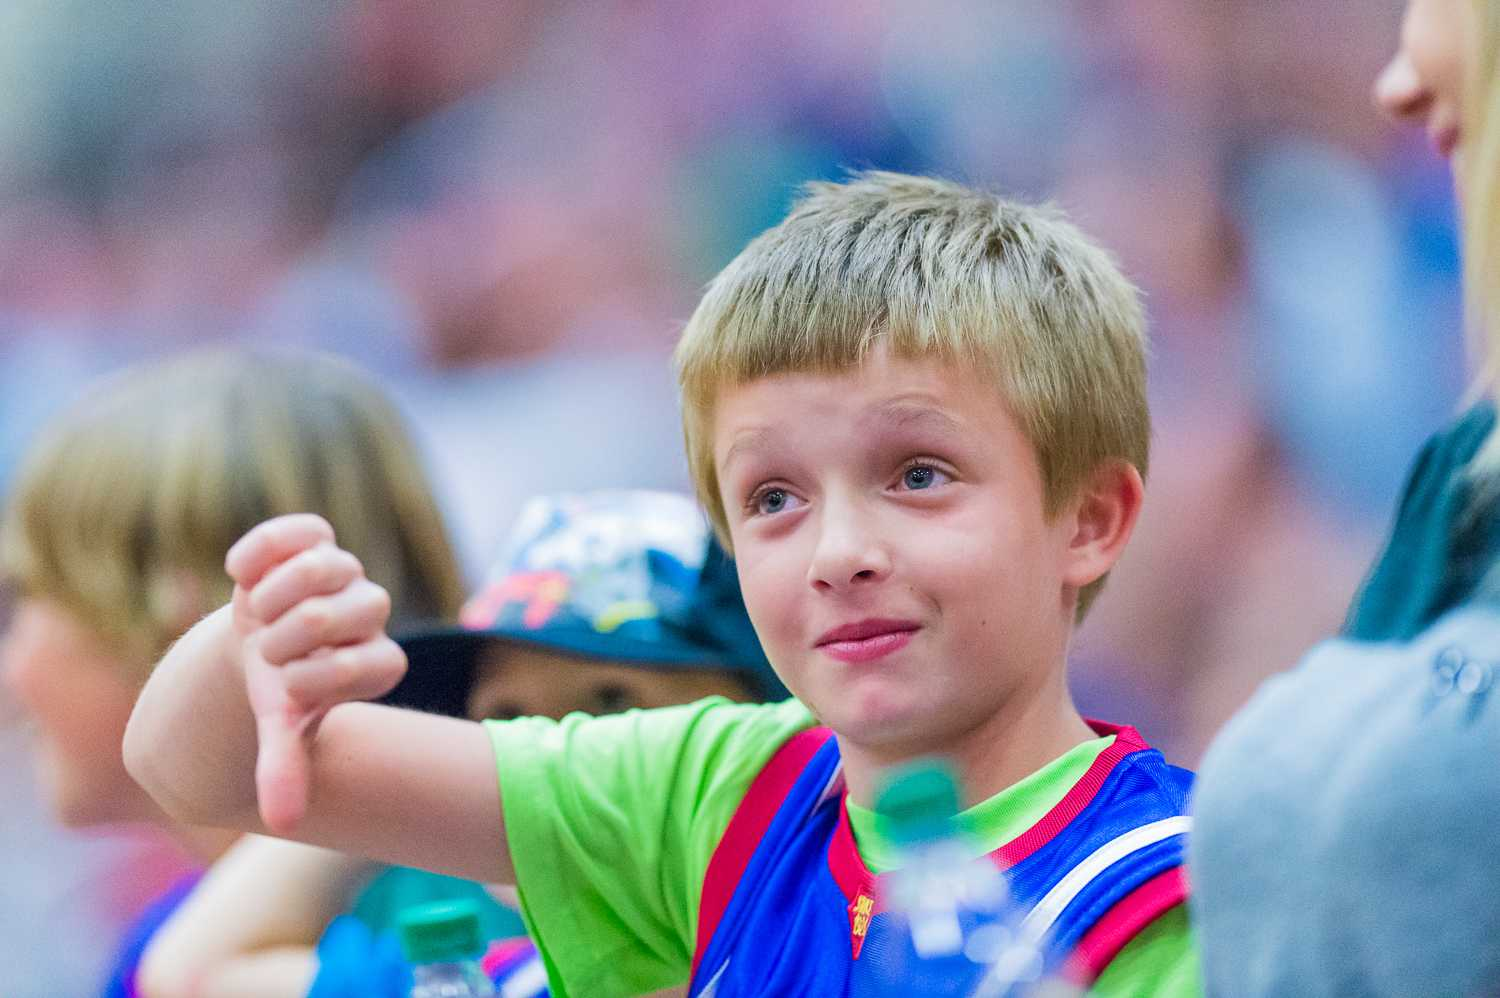 A young Globetrotter fan gives the referee a thumbs down after a bad call.